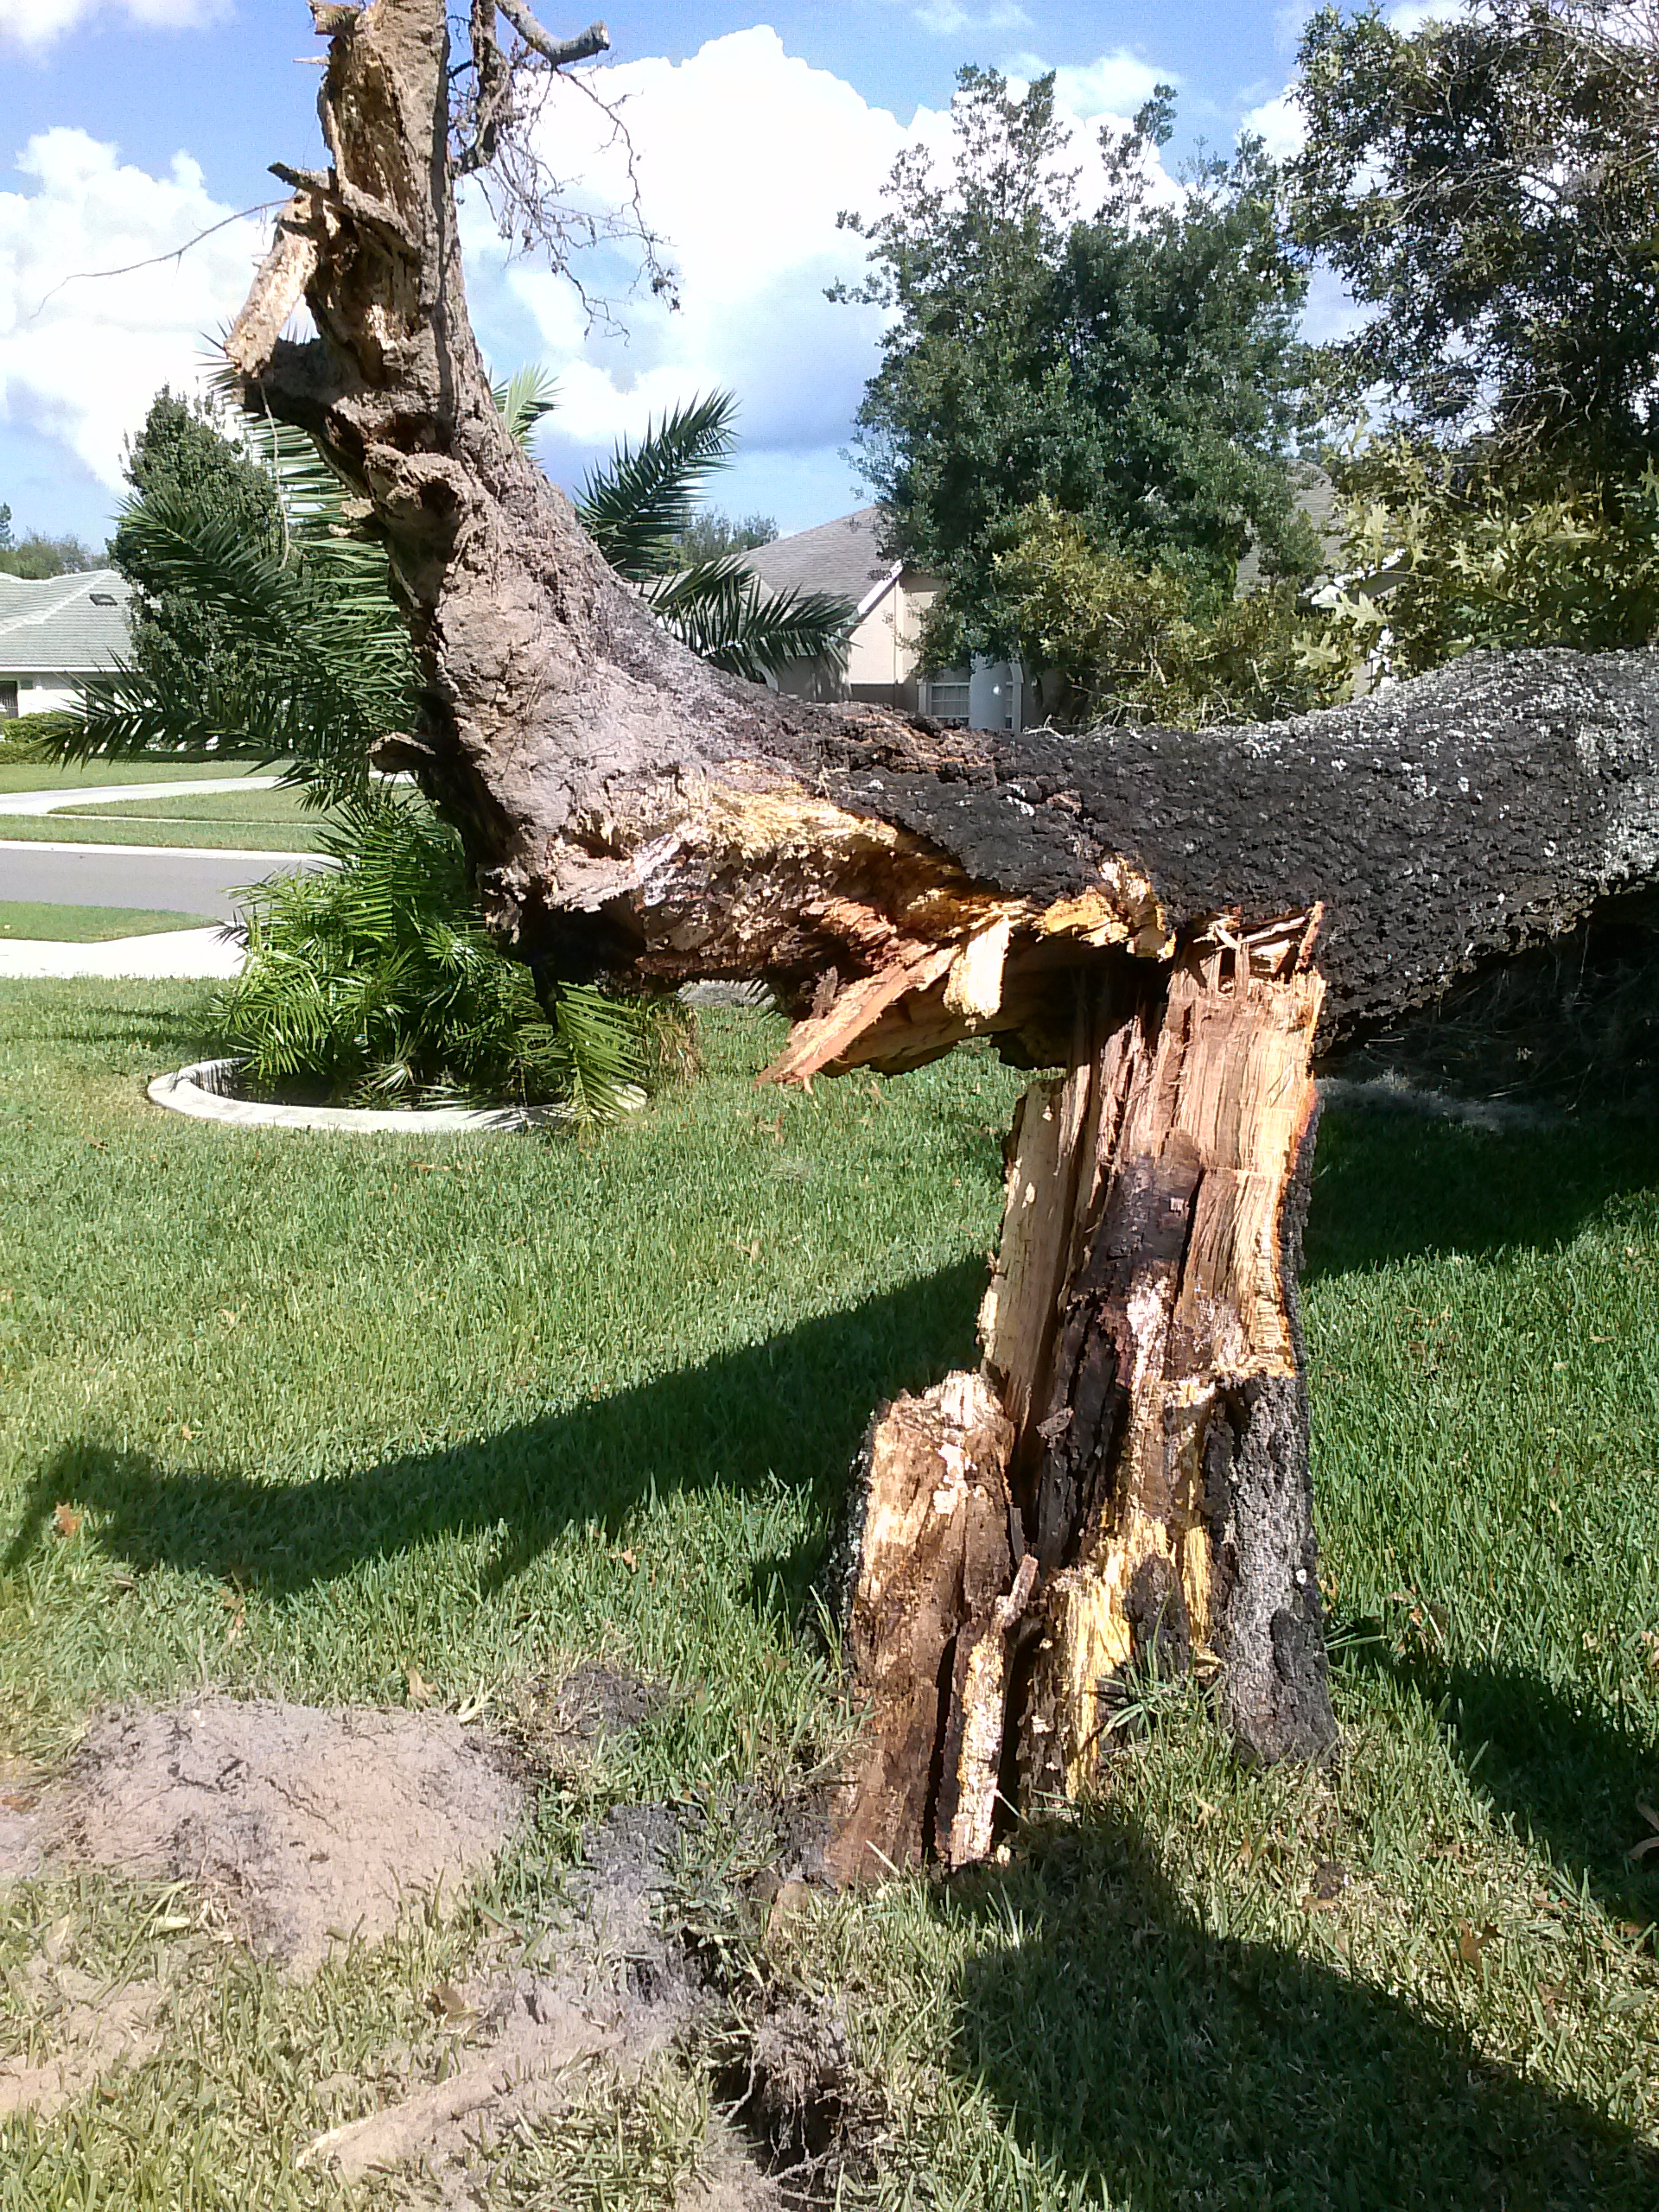 Tree Removal May Be Necessary To Preserve The Health Of Your House Many Trees Start Lifting Houses Foundation And Must Removed Ensure Structural